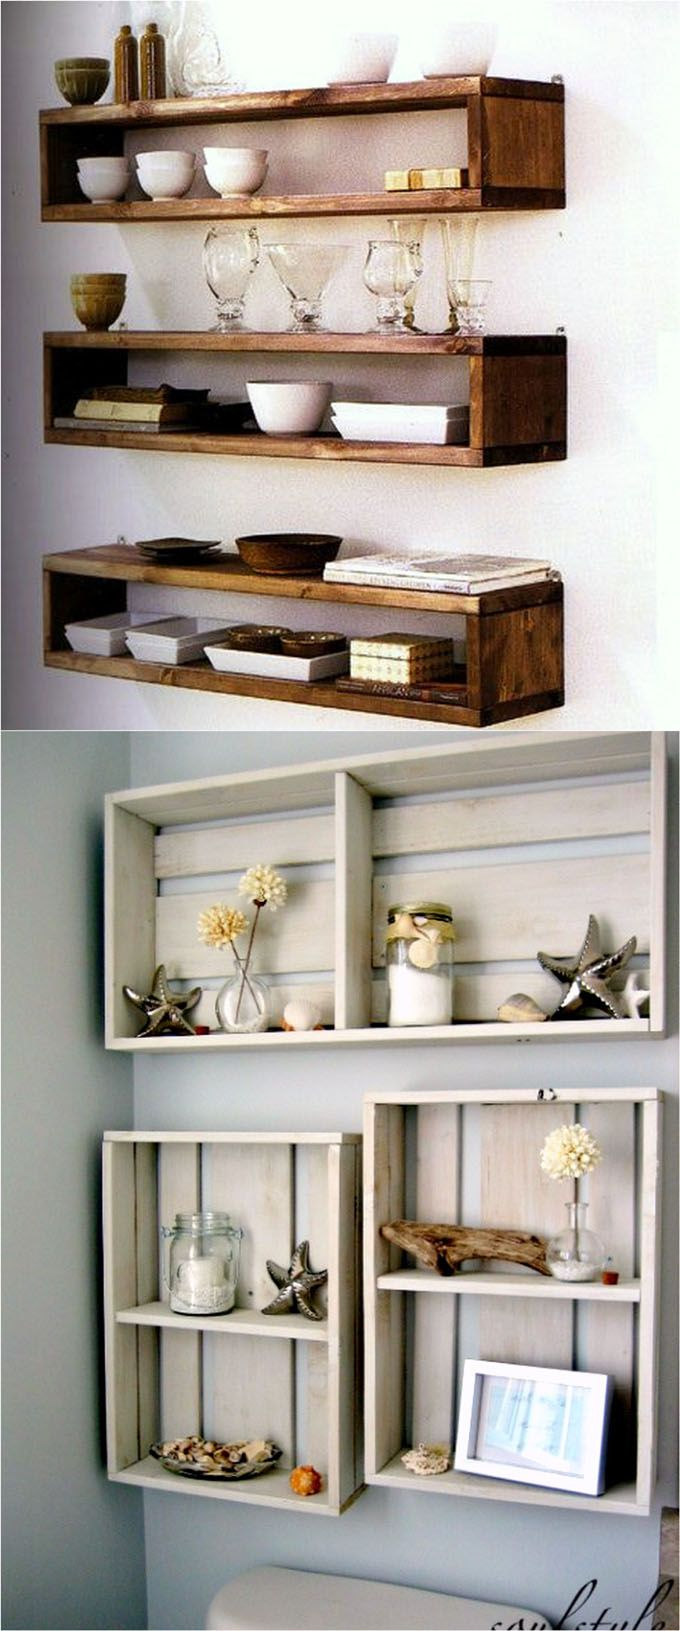 Best 25 wall shelves ideas on pinterest shelves corner shelf 16 easy and stylish diy floating shelves wall shelves amipublicfo Gallery